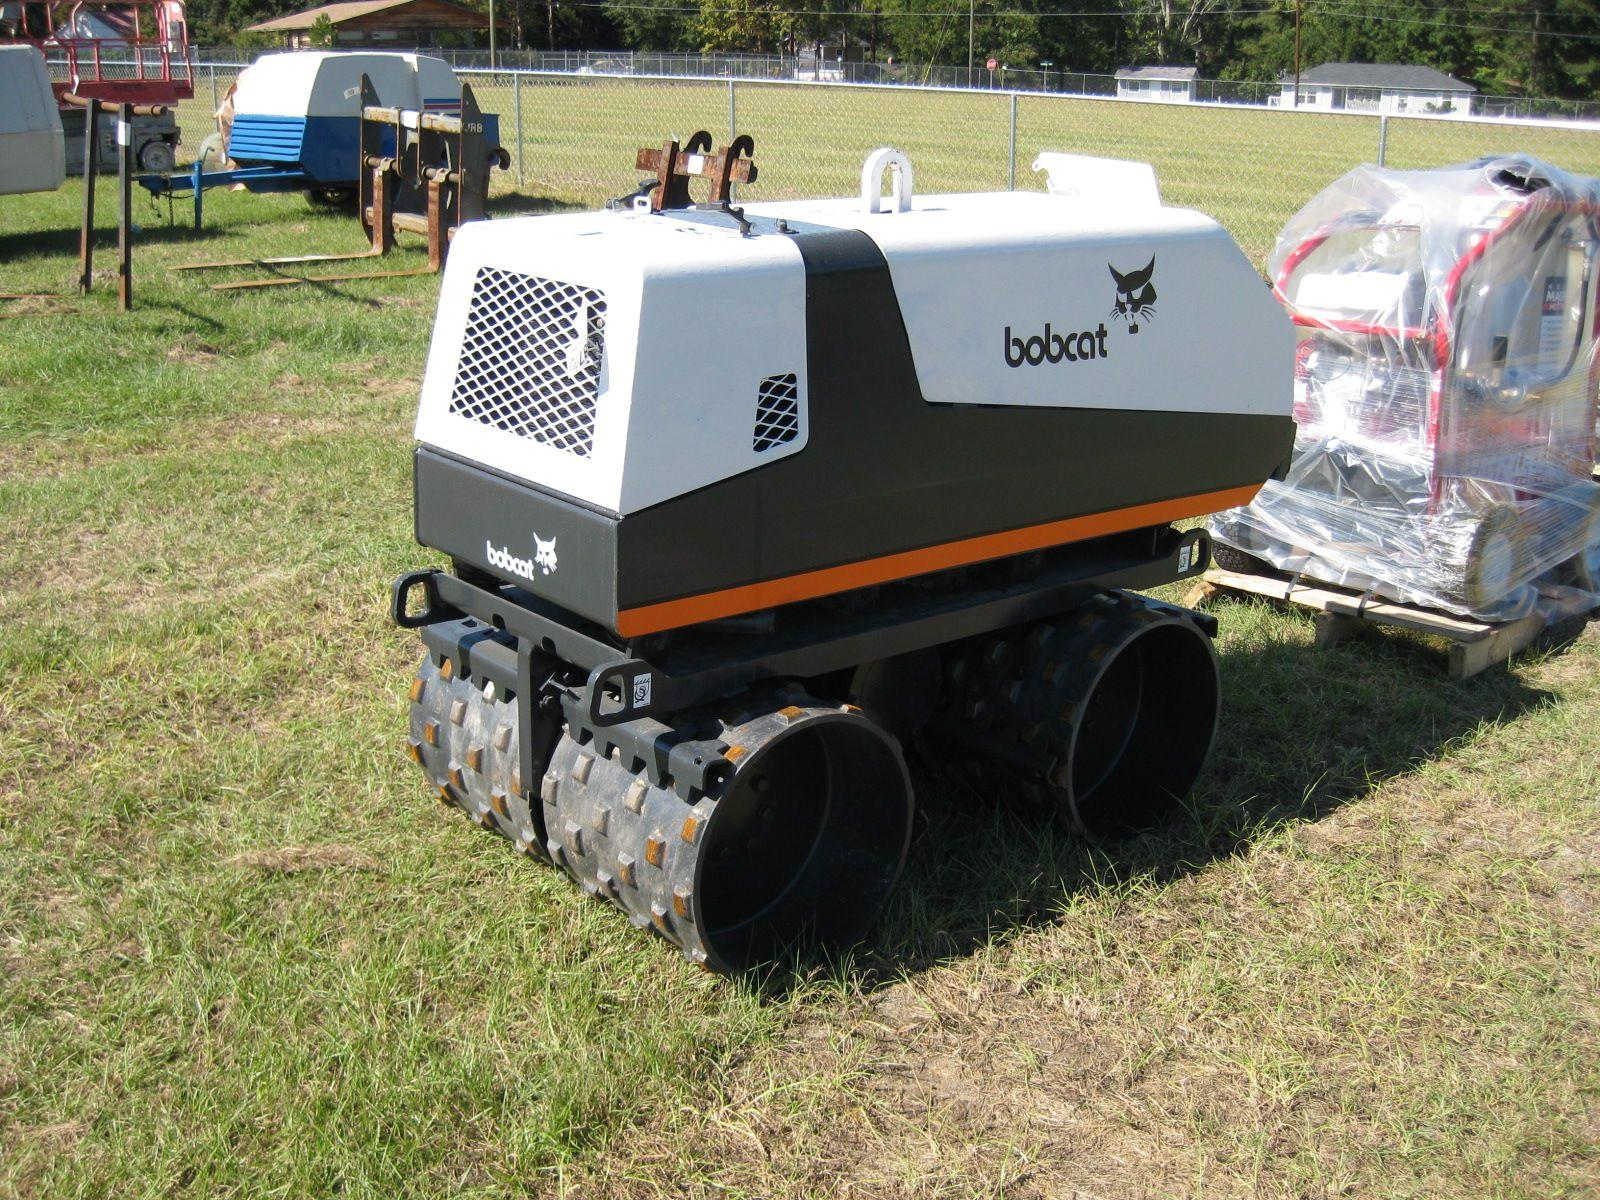 hight resolution of image 1 bobcat ingersoll rand bct 13 trench compactor s n